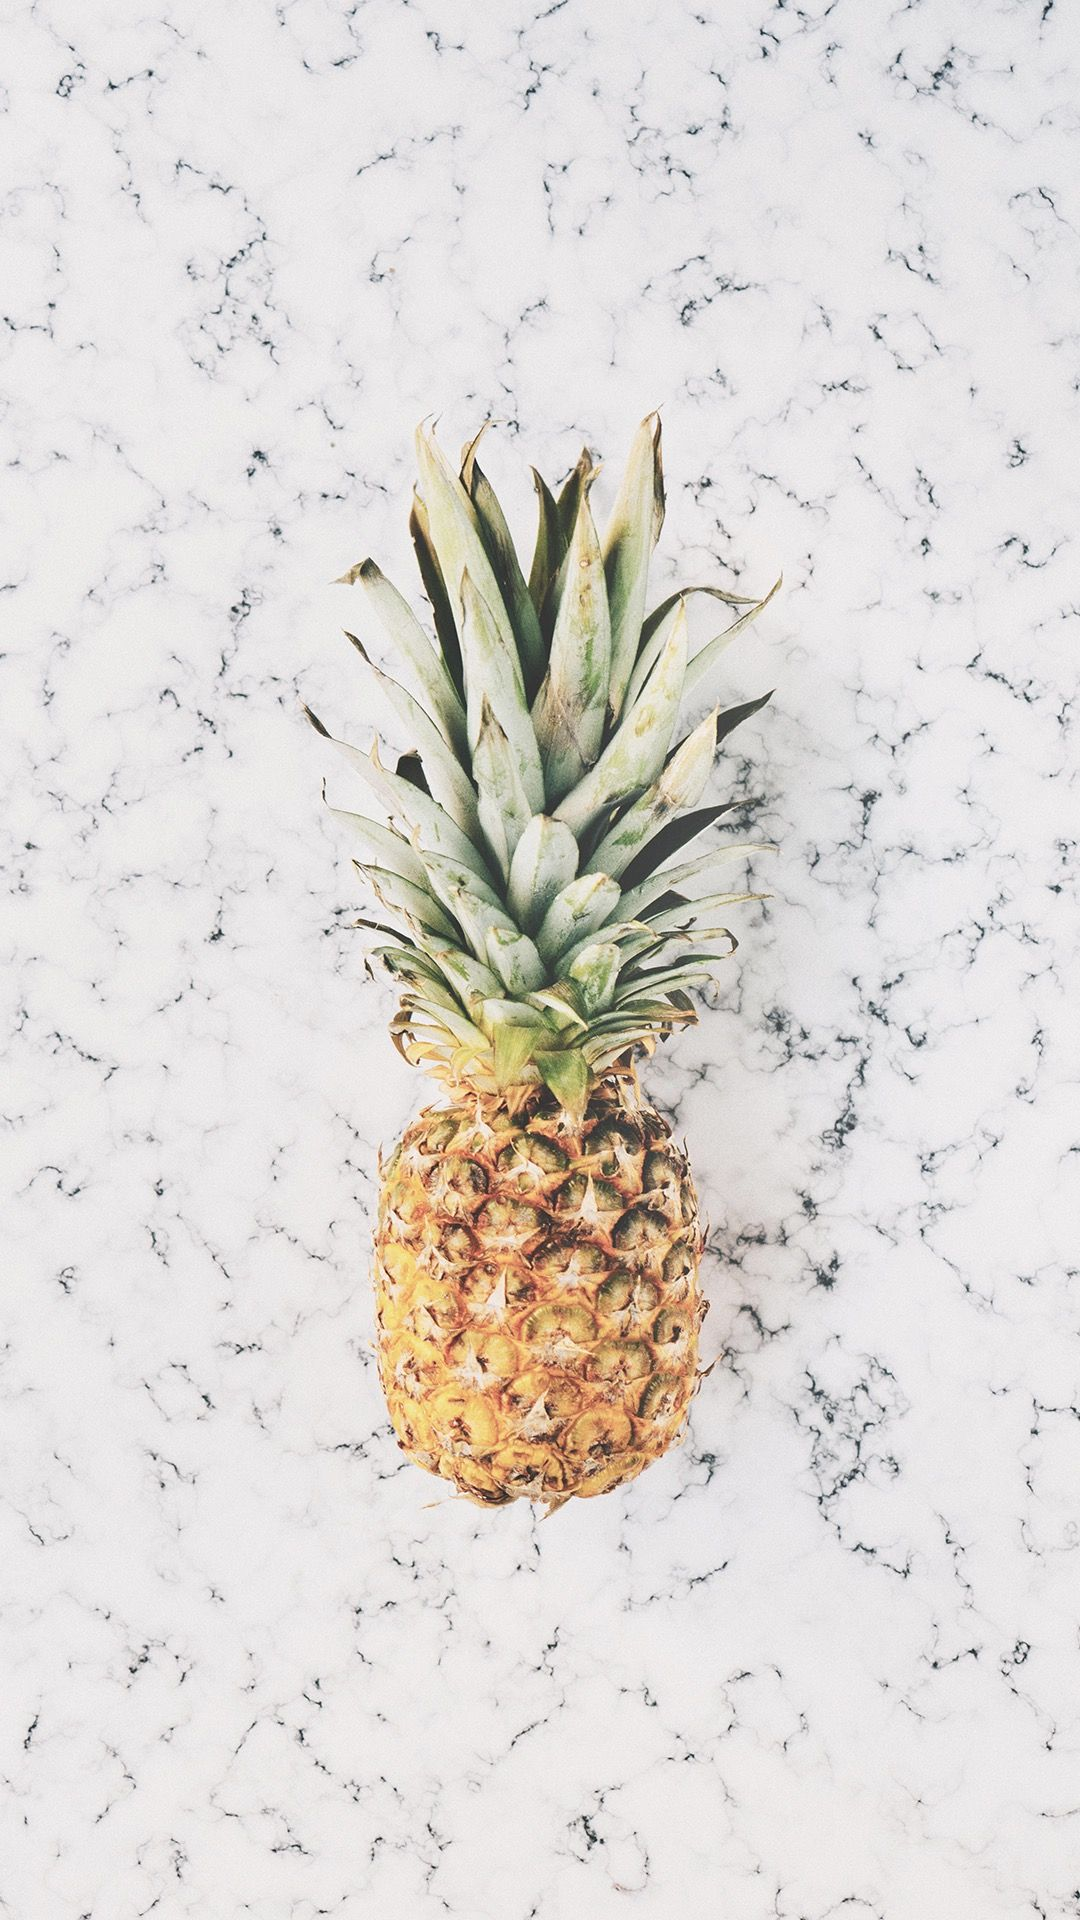 iphone wallpaper Pineapple photo, Pineapple wallpaper